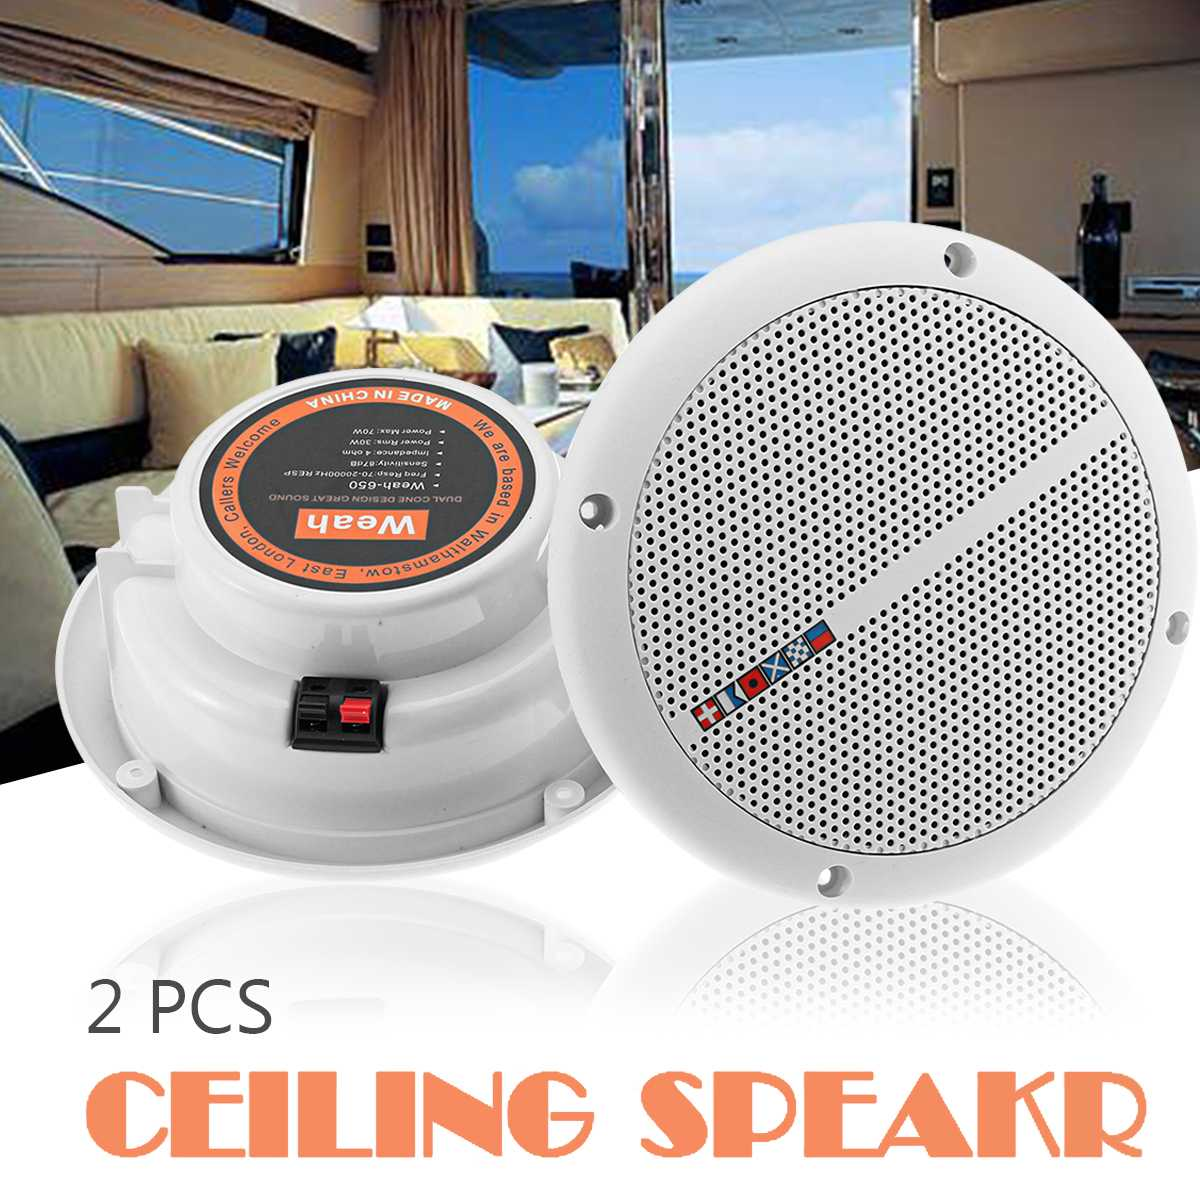 Ceiling-Speakers Boat Yacht Bathroom Pair Outdoor Waterproof Household Home 2 Car 2-Way title=